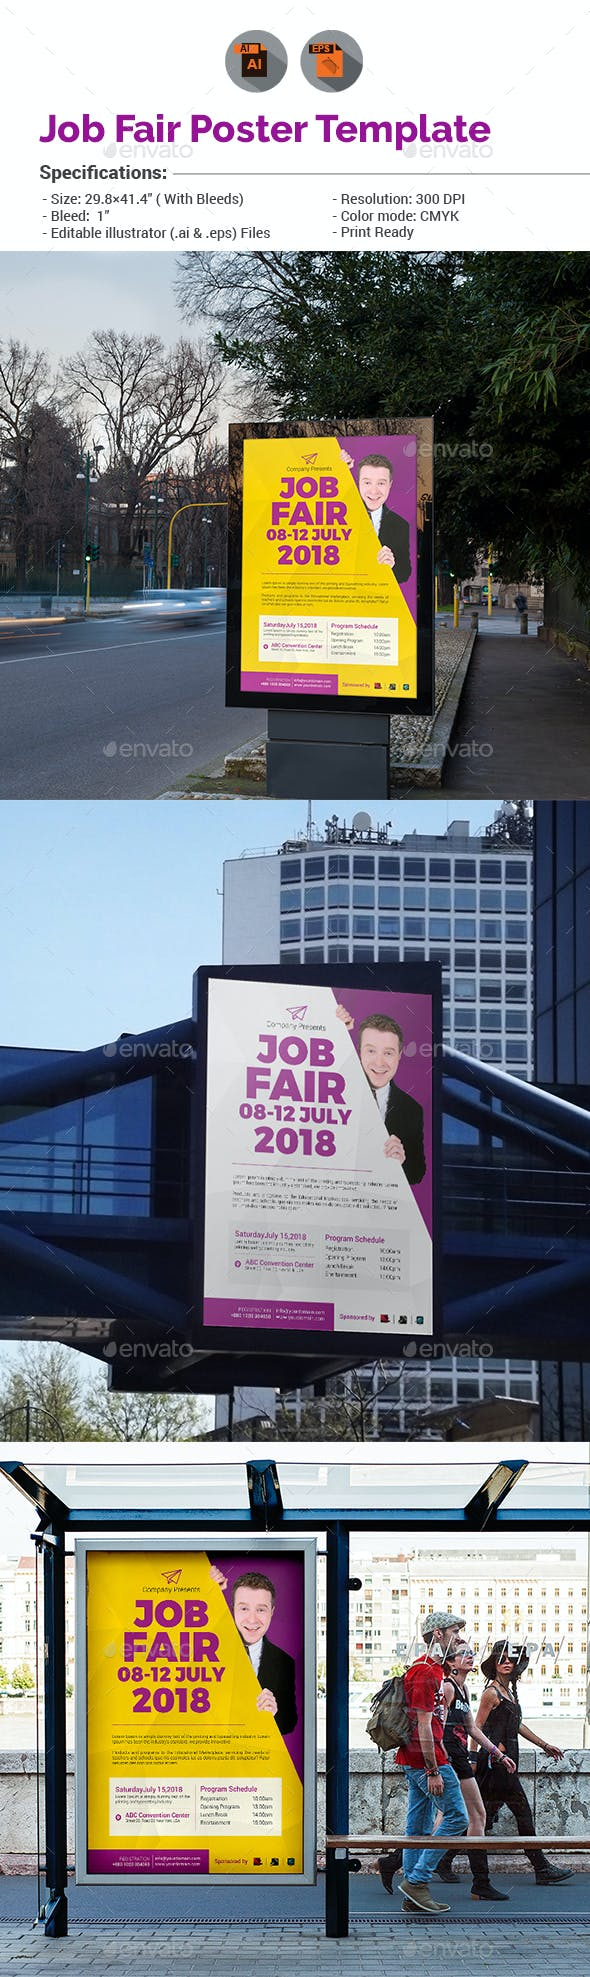 job fair poster template v1 by aam360 graphicriver